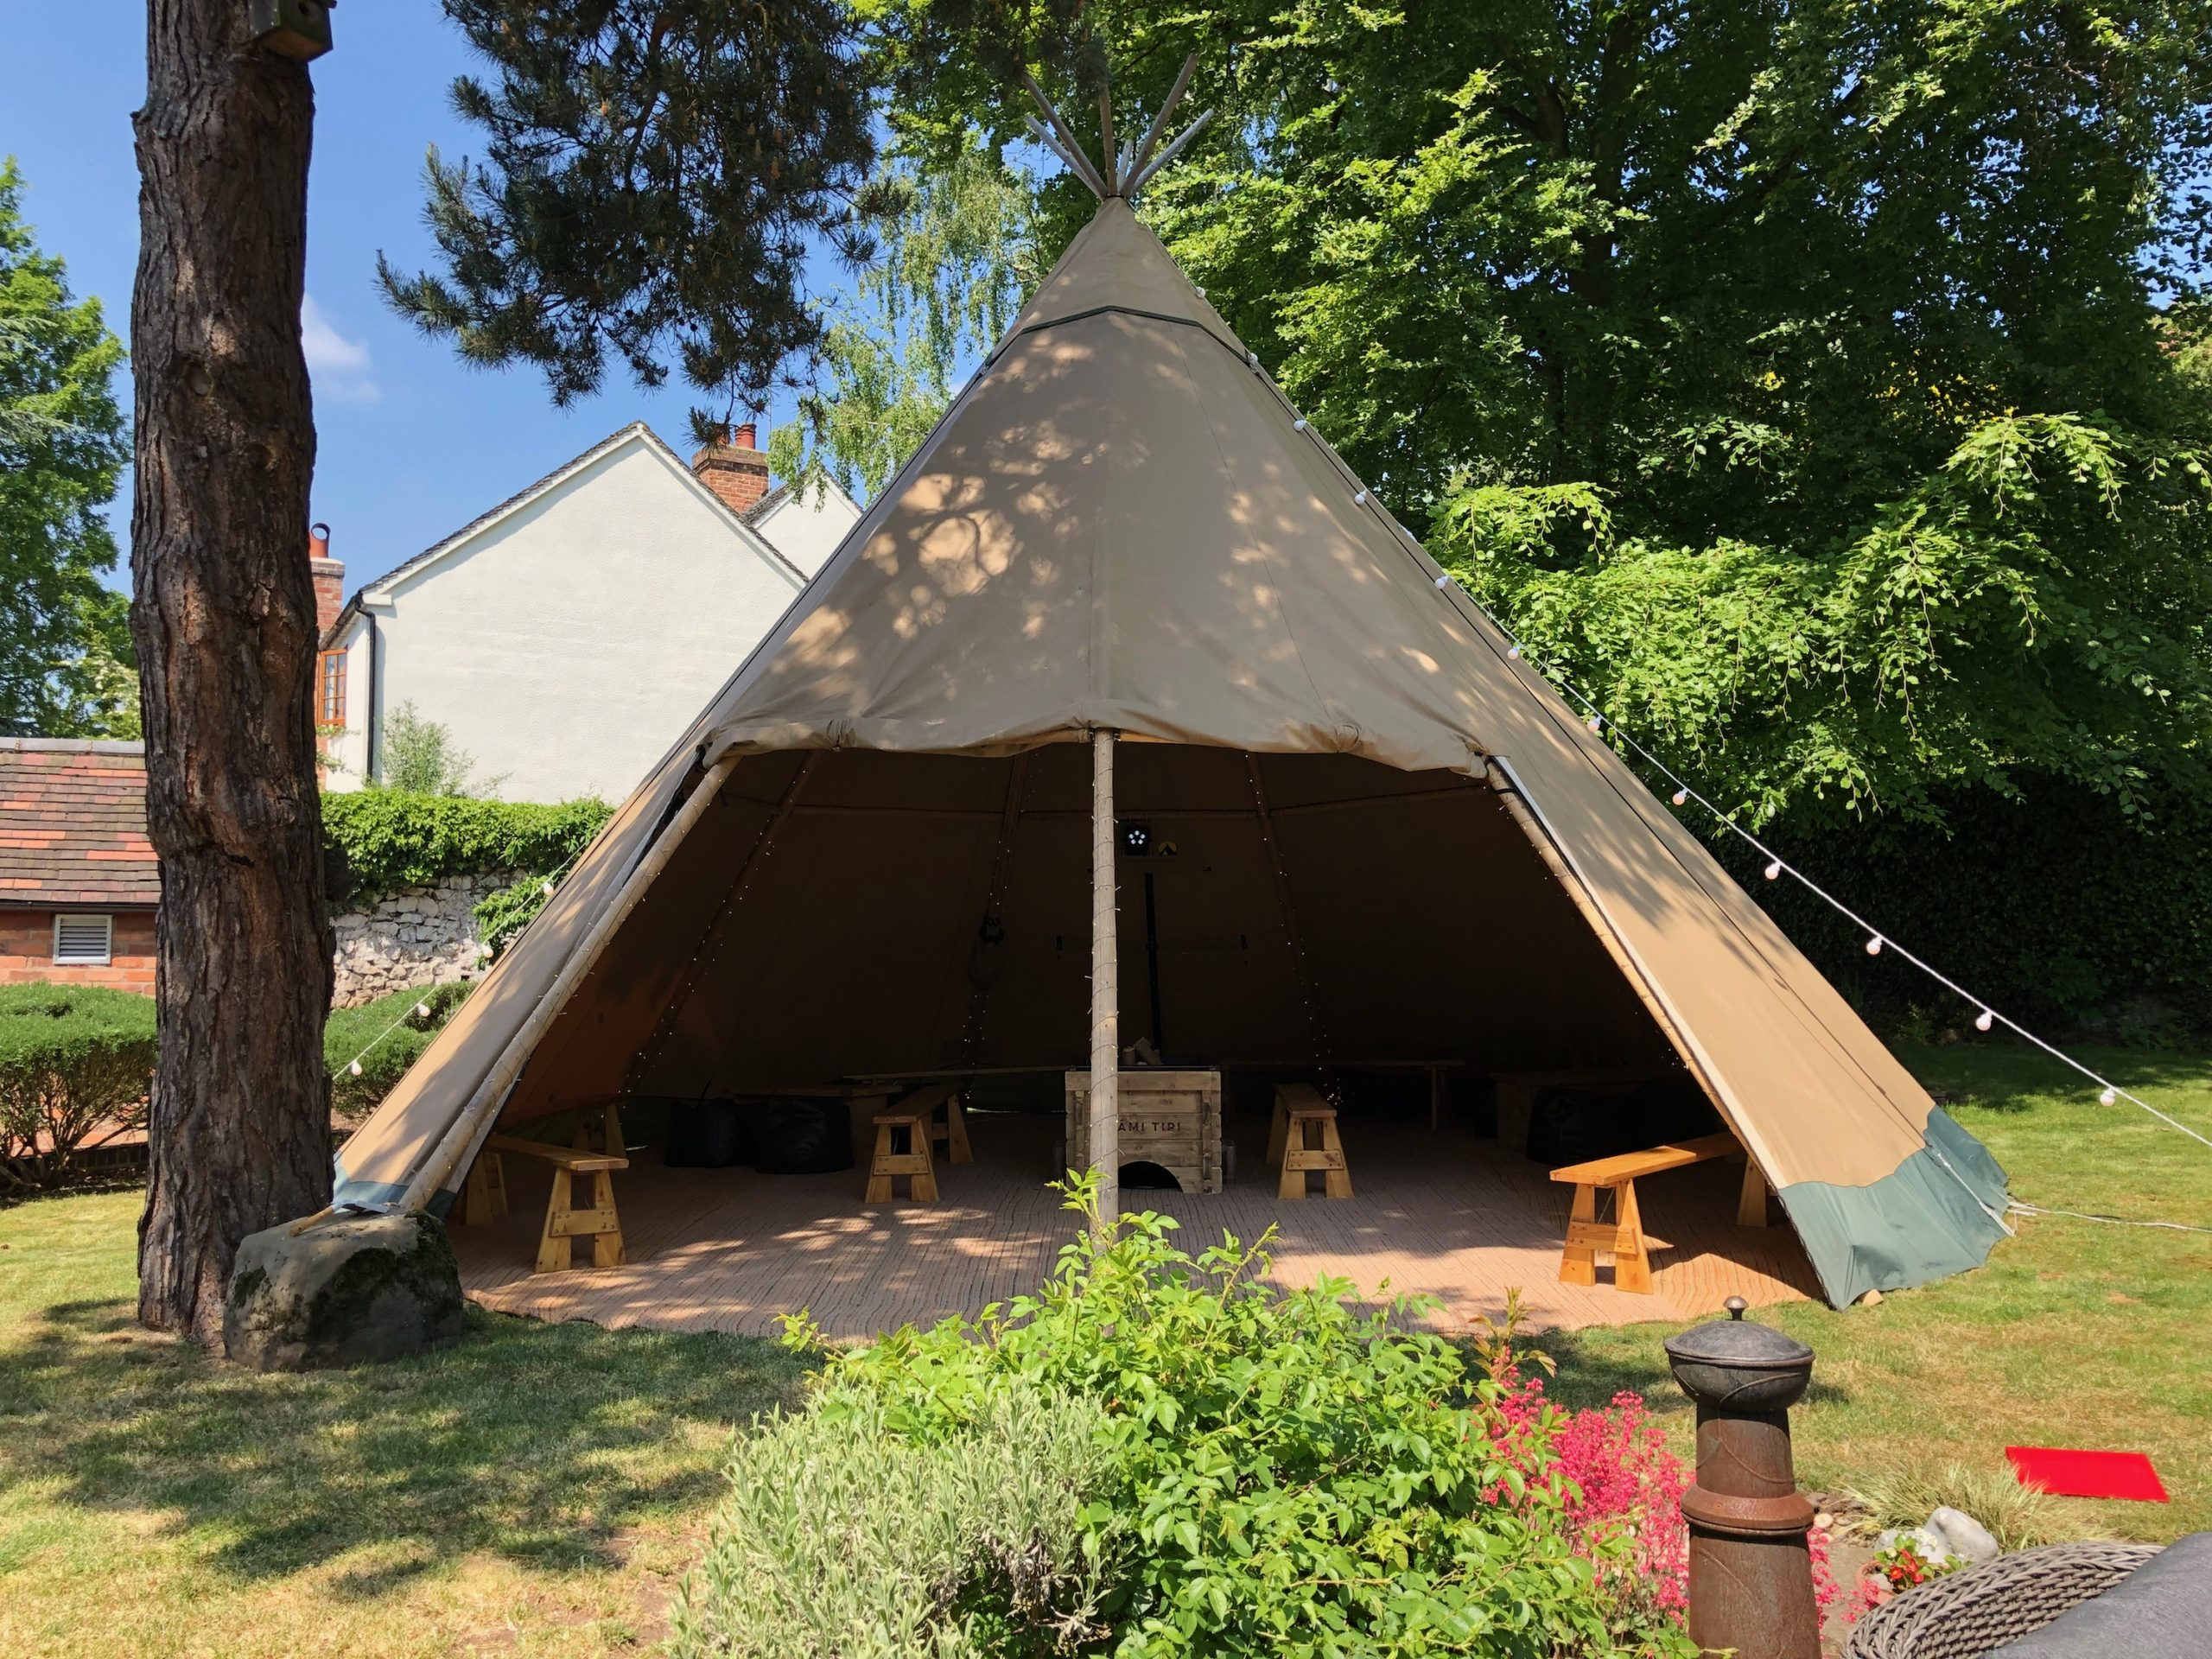 Garden lockdown celebration with a chill-out tipi